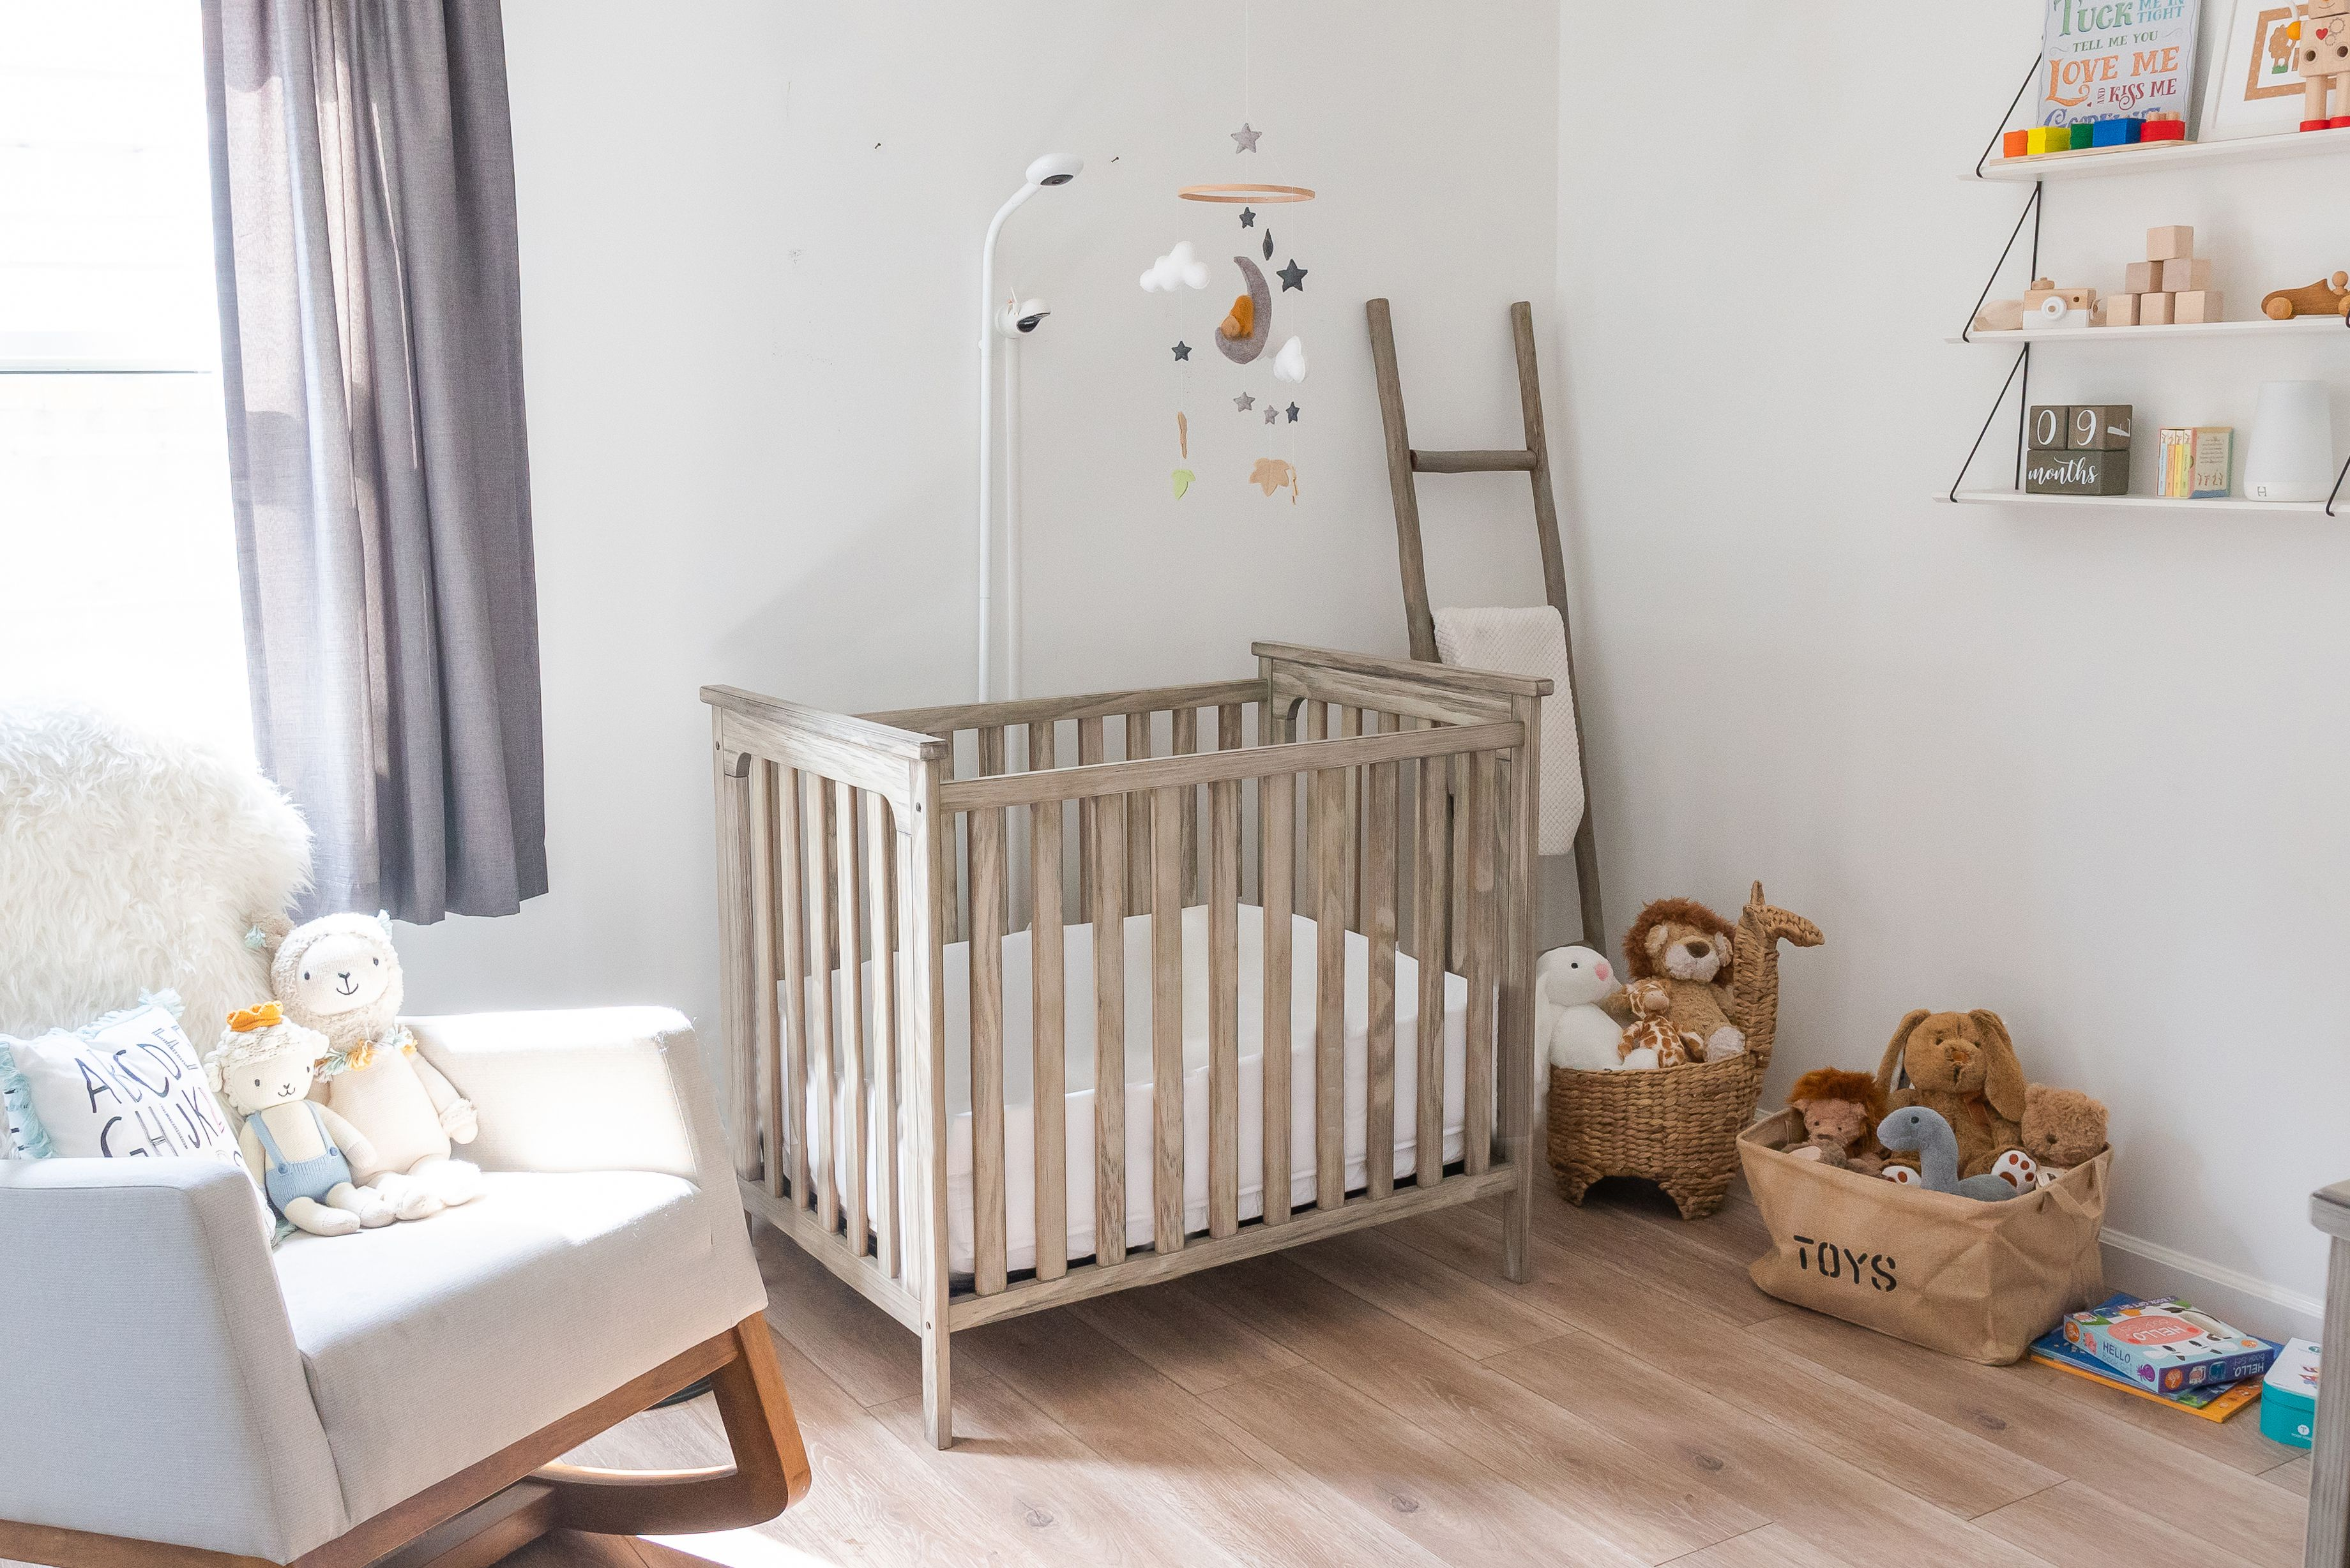 How To Design A Nursery: Dos And Don